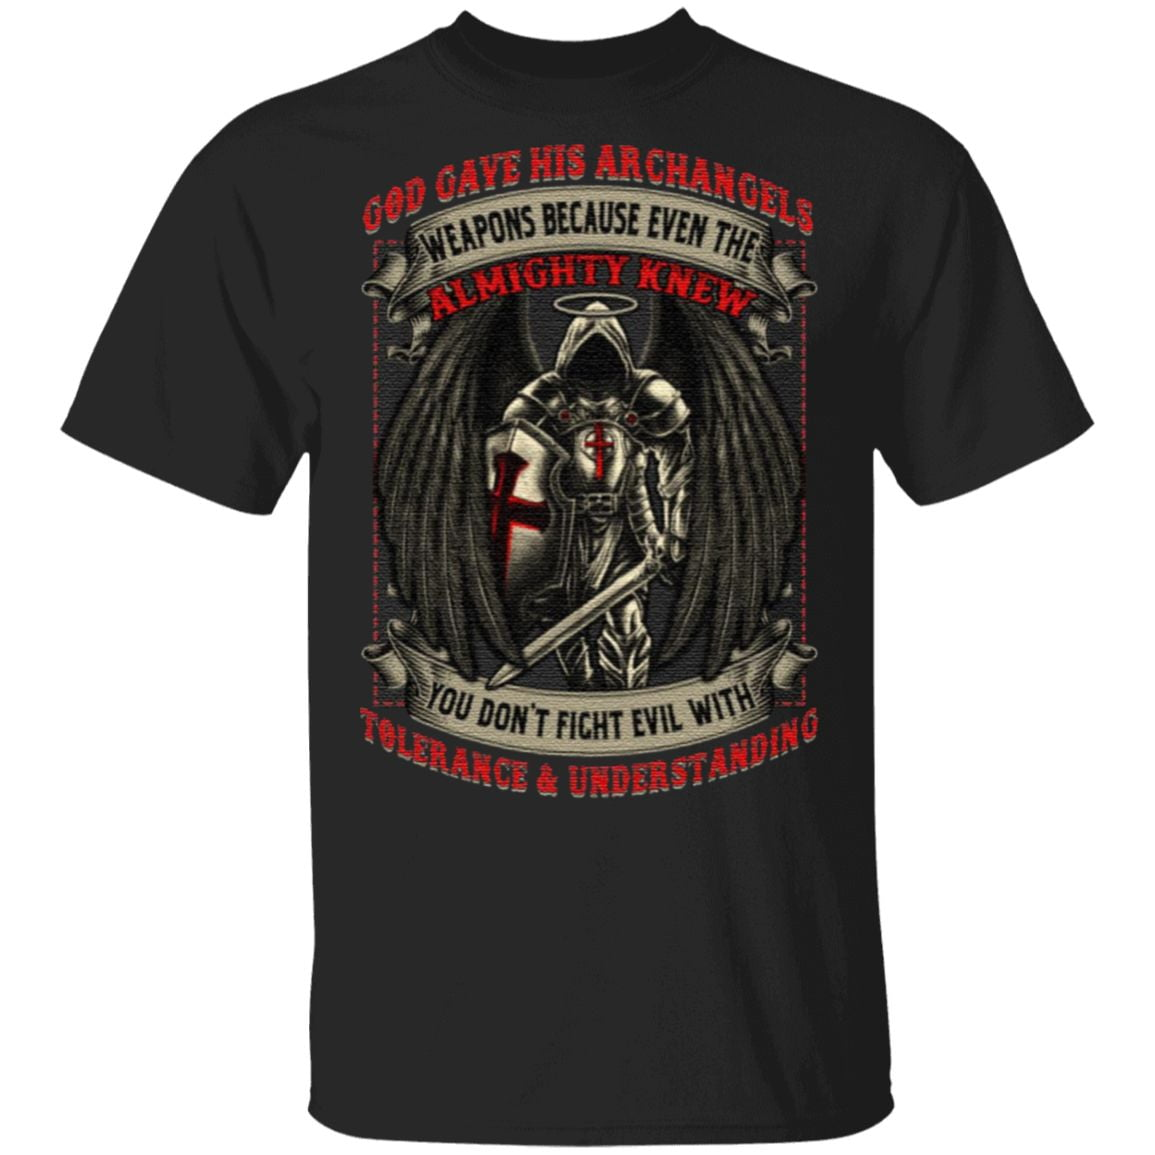 God Gave His Archangels Weapons You Don't Fight Evil With Tolerance and Understanding Print On Back T-Shirt